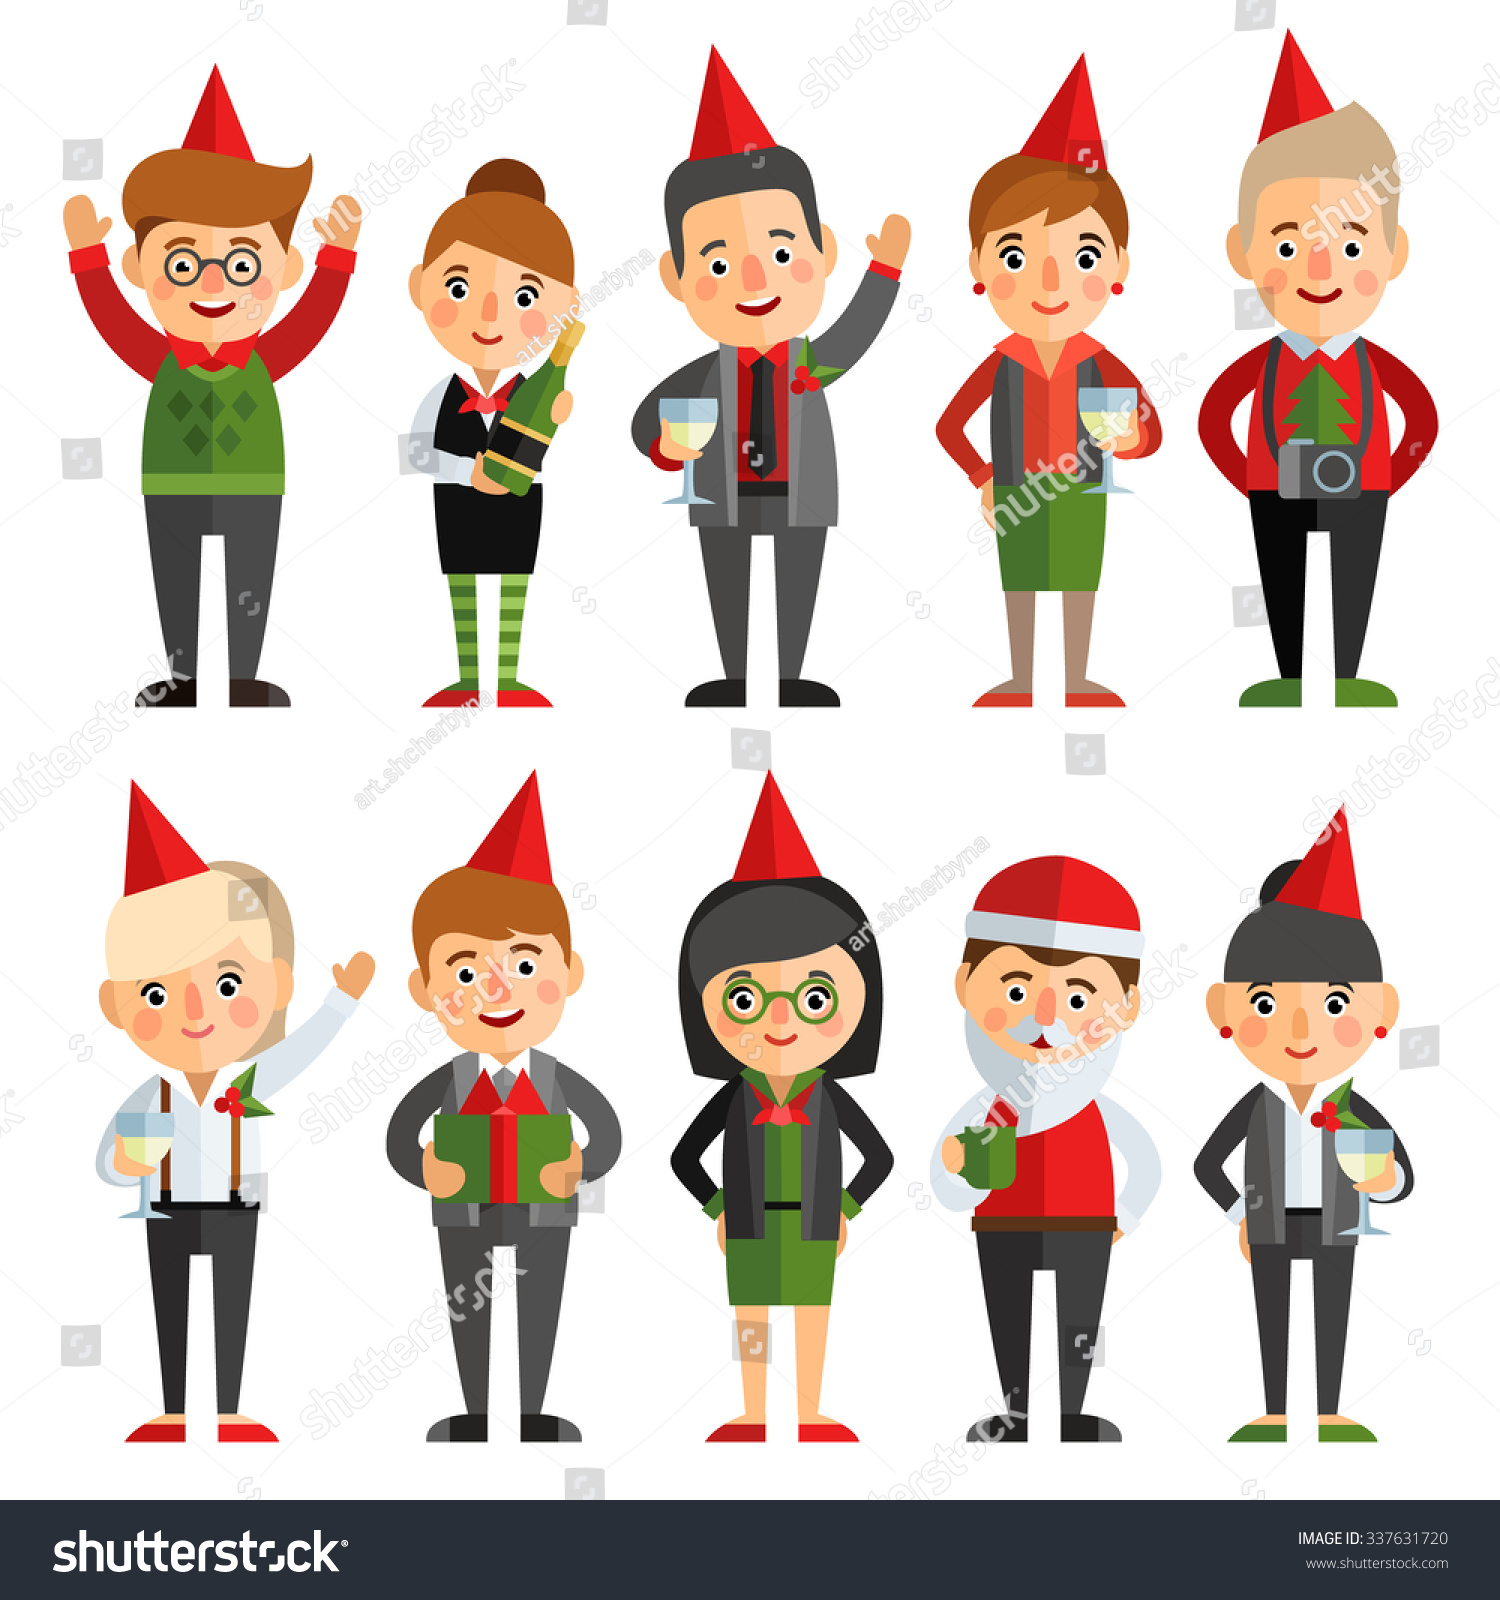 Set Characters Flat Style Christmas Party Stock Vector (Royalty Free ...